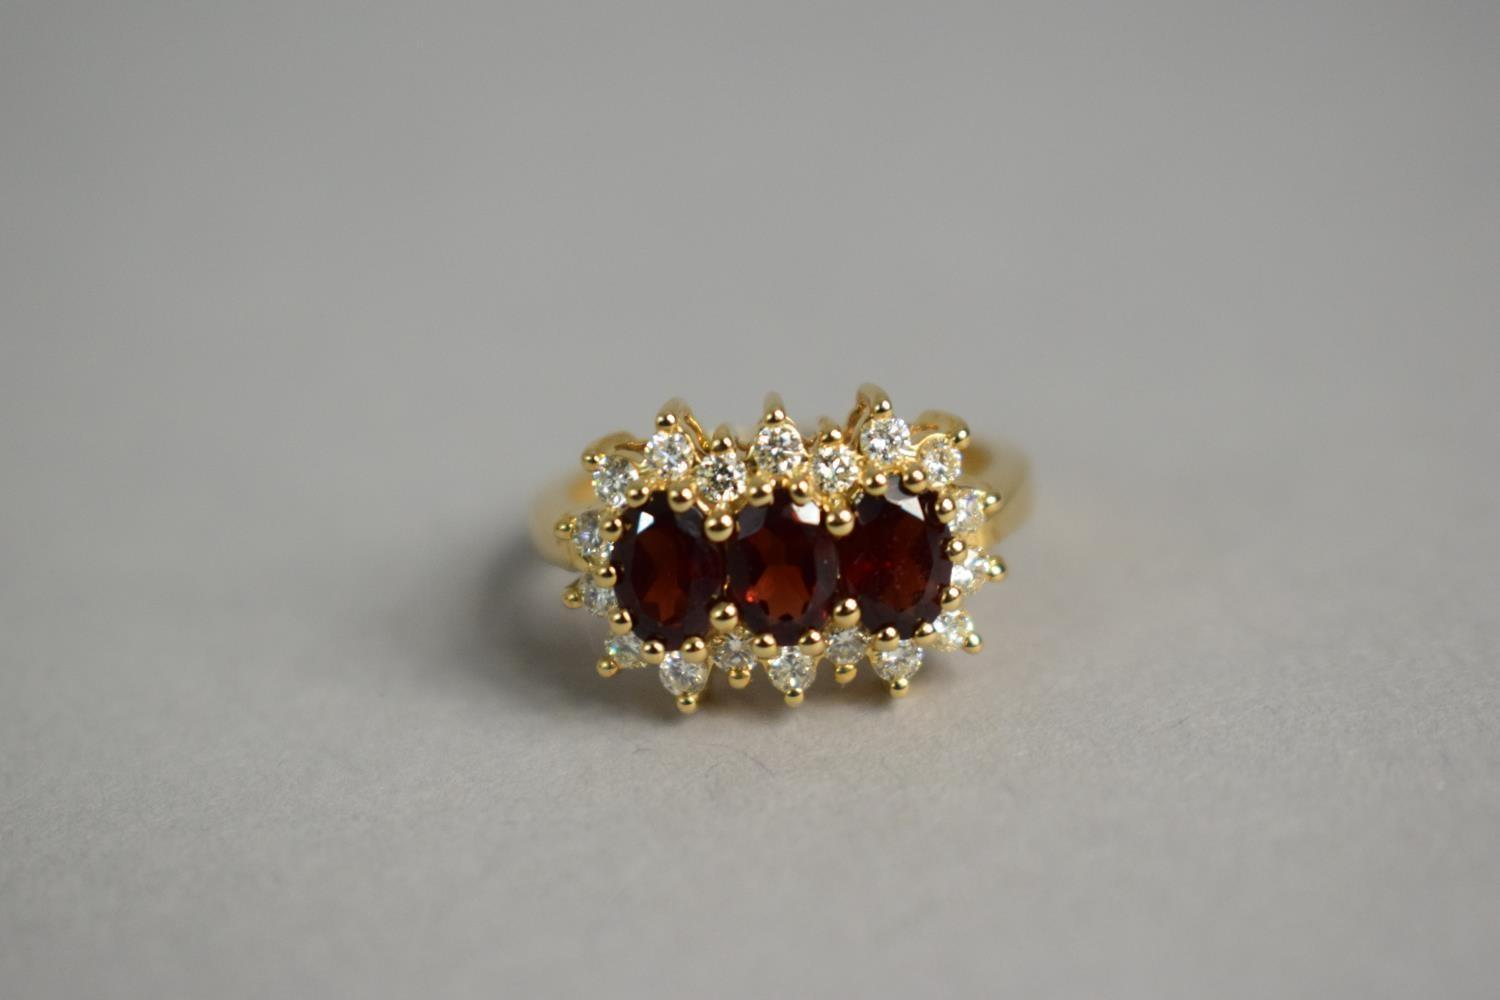 Lot 309 - A 9ct Gold, Diamond and Garnet Cluster Ring, 4.1gms.